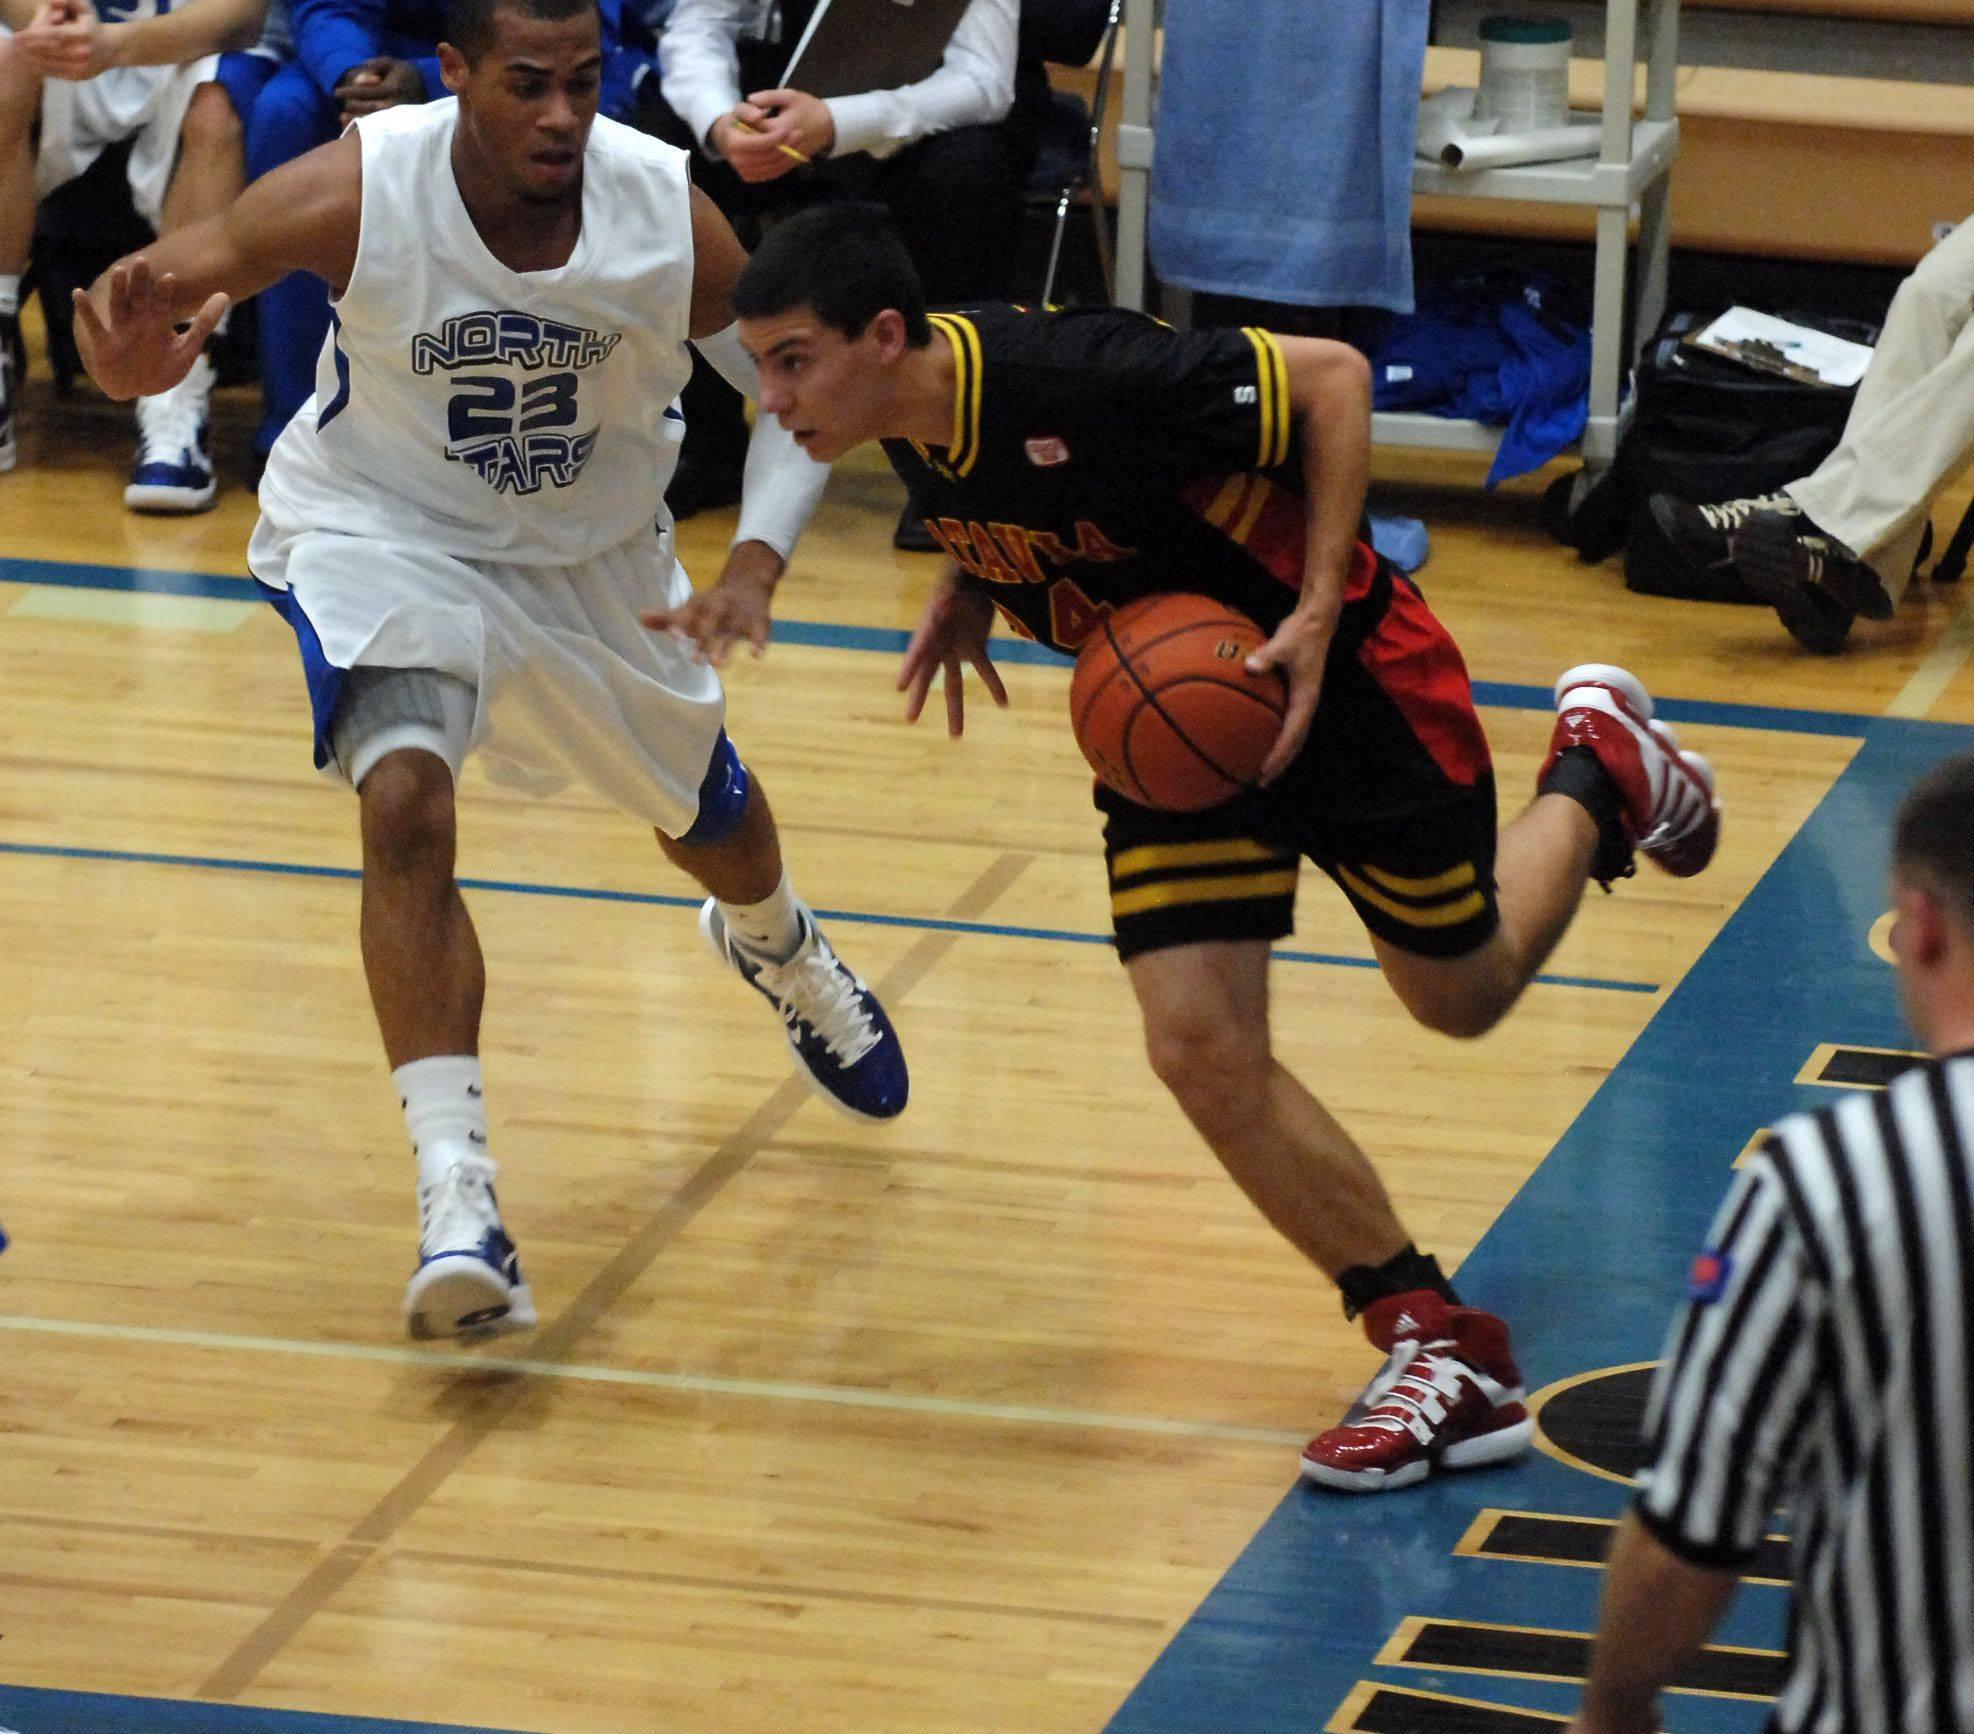 Images from the Batavia at St. Charles North boys basketball game, Thursday, December 2, 2010.